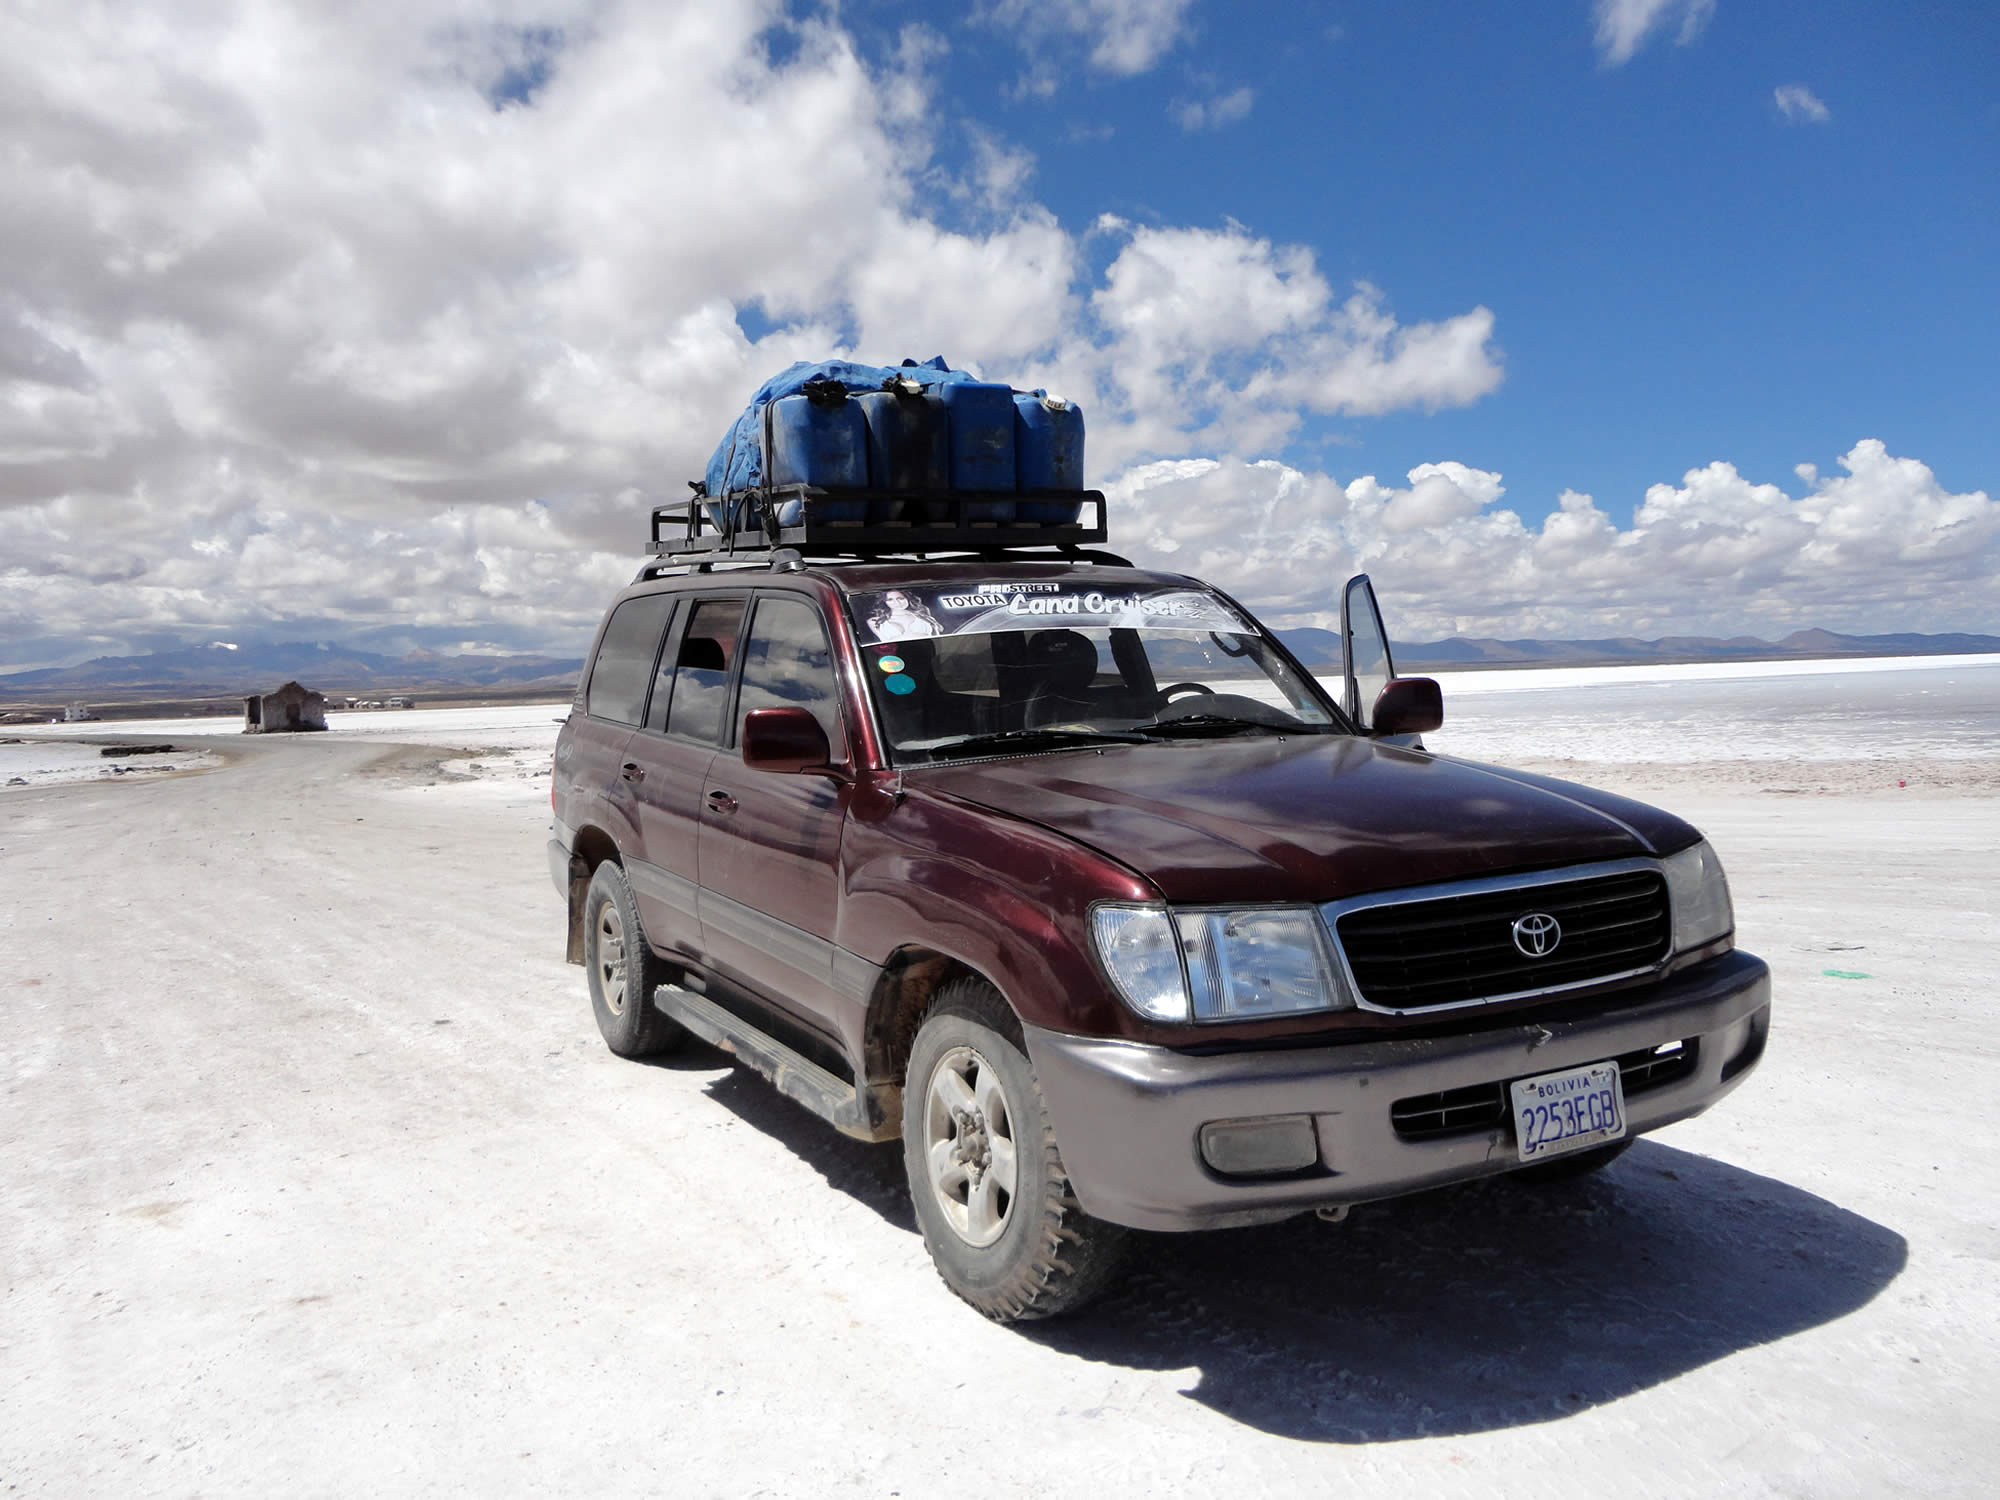 La Paz - Uyuni Salt Flat - La Paz Shared Tour by Plane, 3 Days, 4 Nights